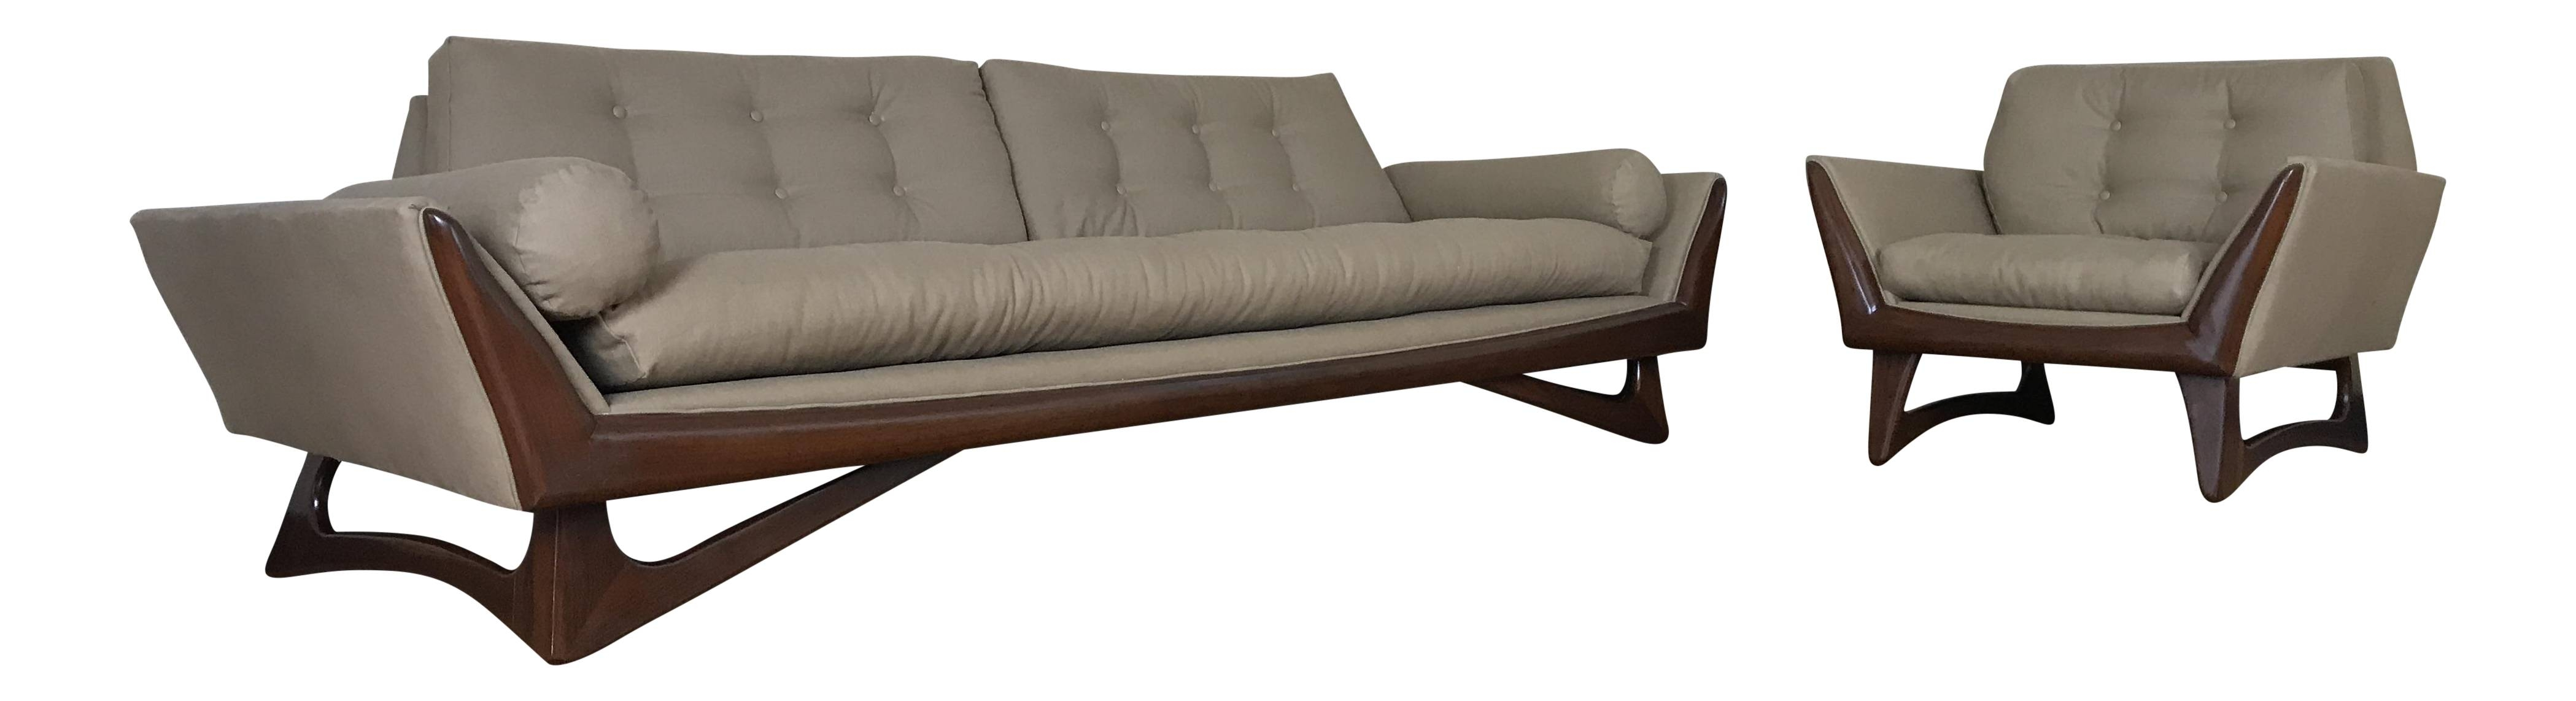 Sofas Center : Adrian Pearsall Sofa For Craft Associates Inc throughout Unusual Sofa (Image 4 of 23)